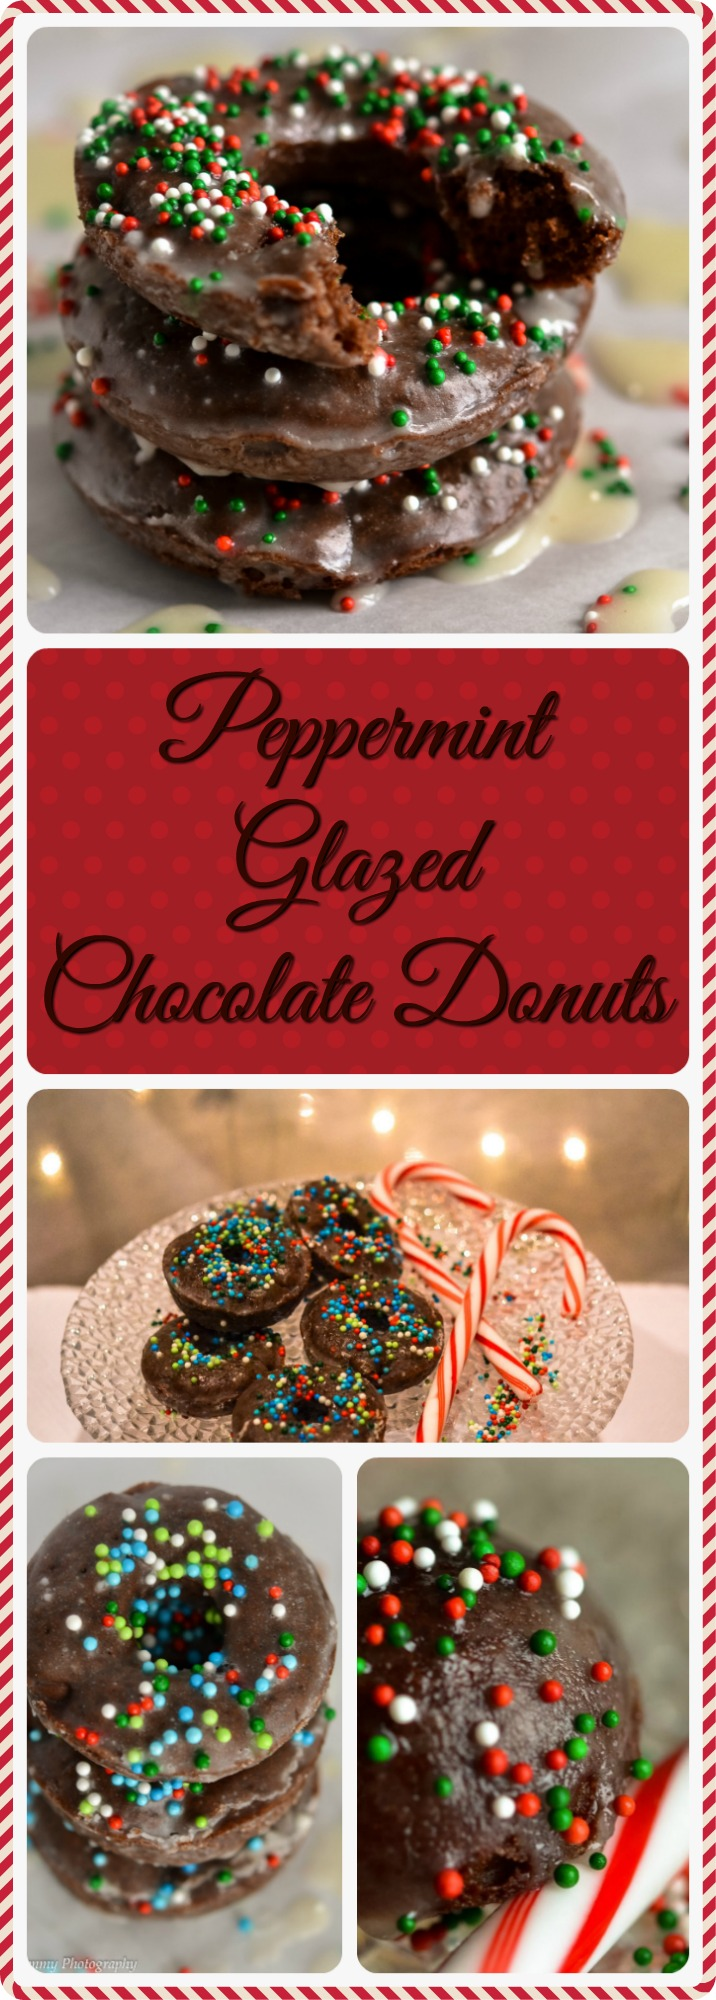 peppermint-glazed-chocolate-donuts-long-pin